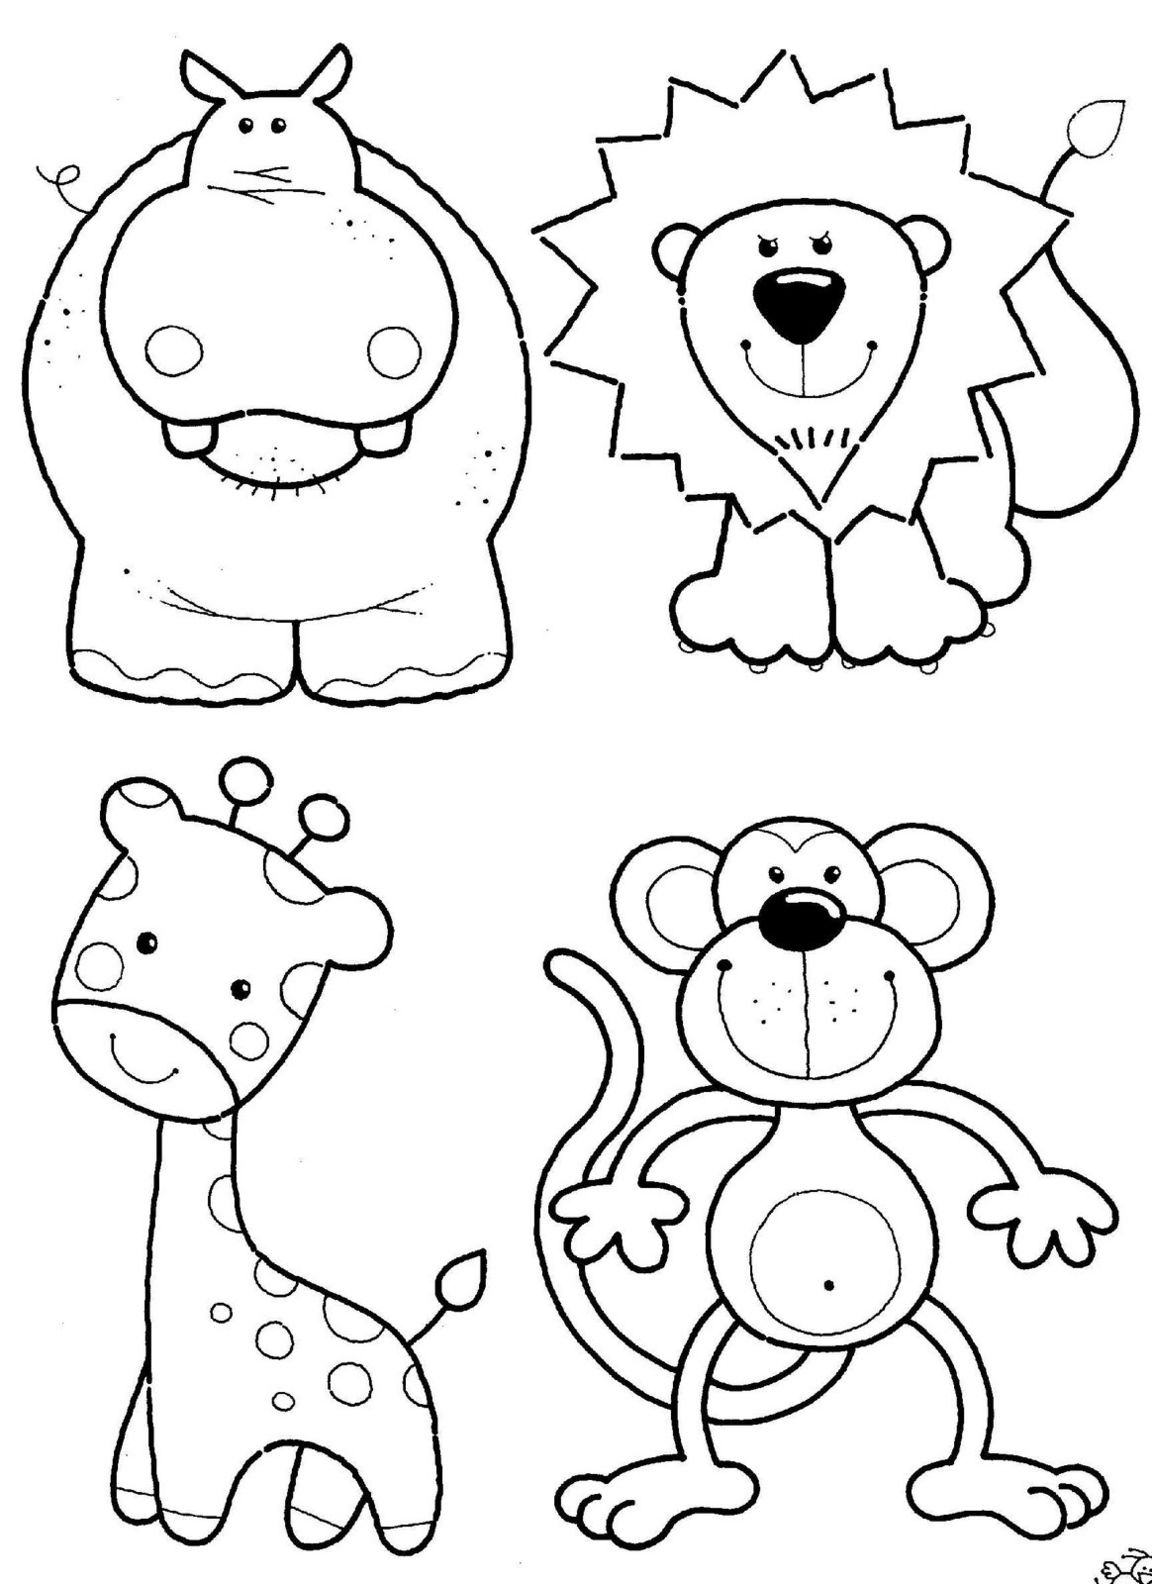 Coloring Pages To Print Animals Coloring Pages To Print Animals